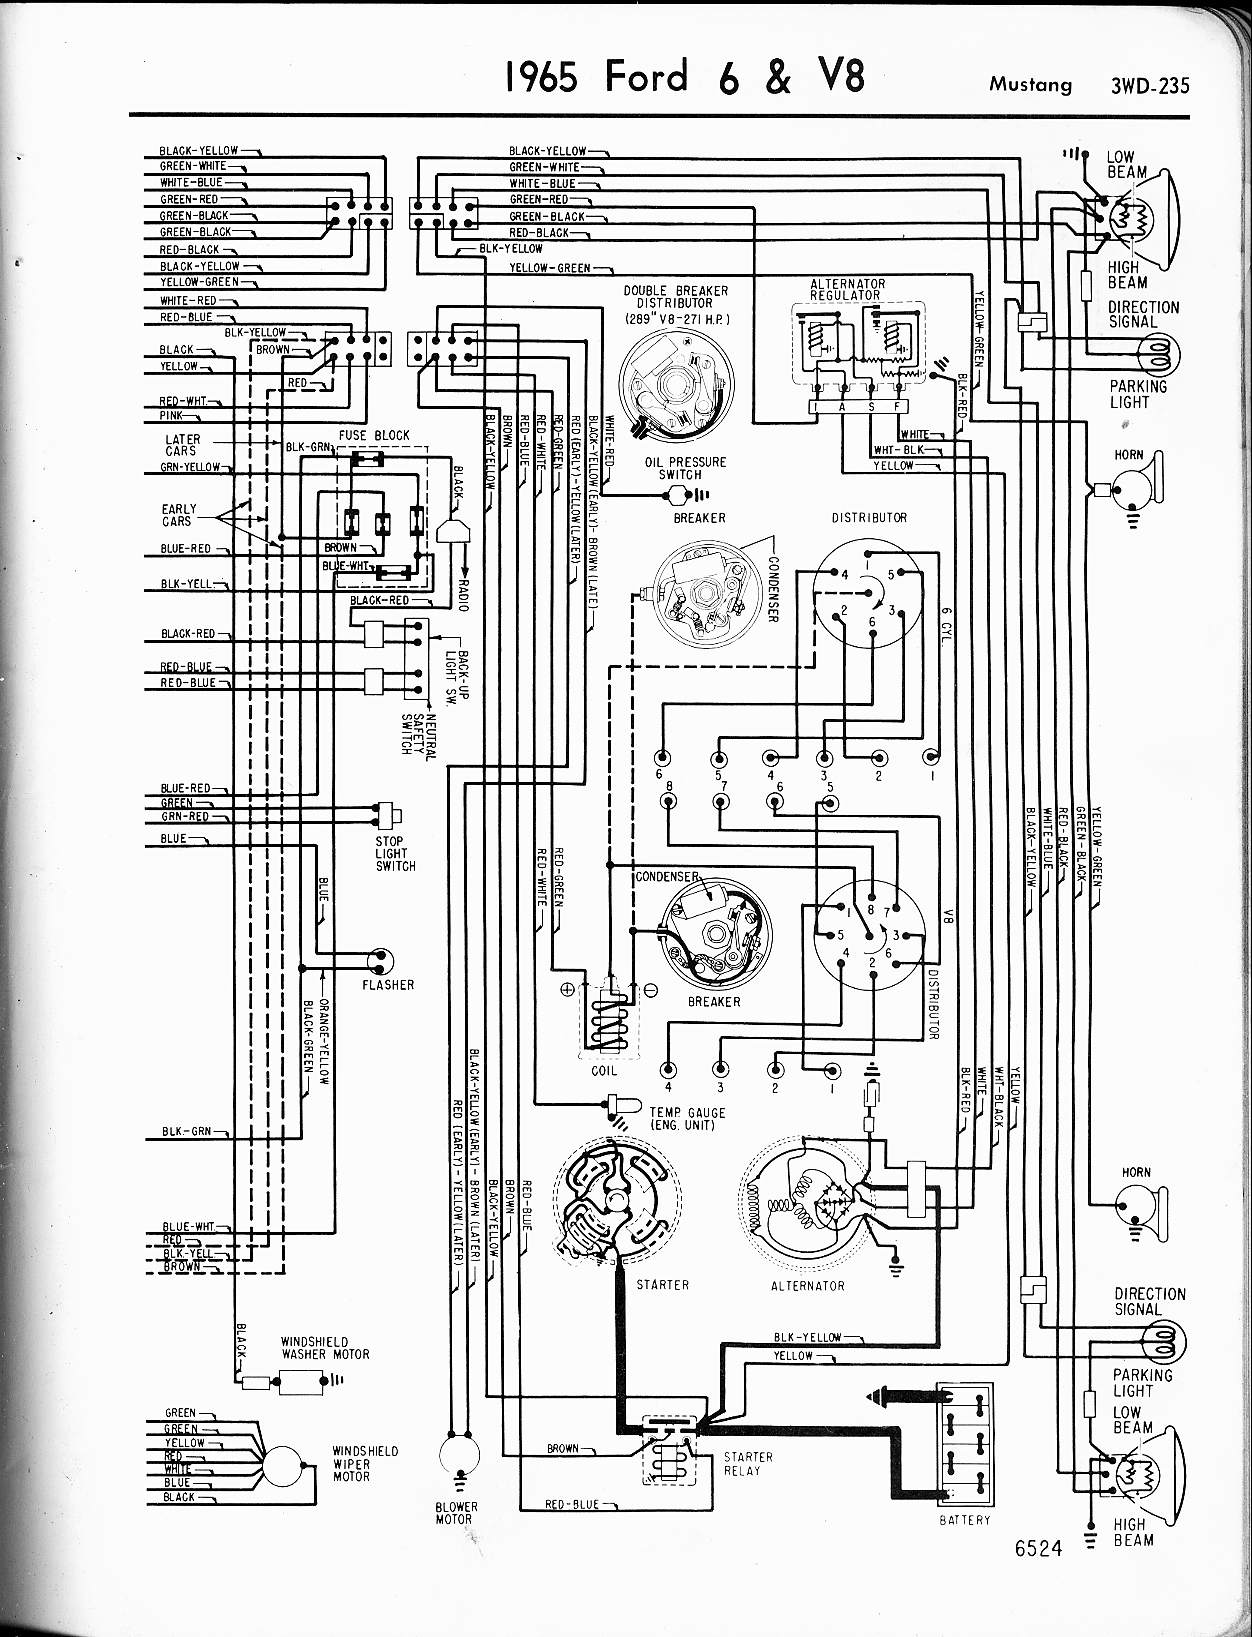 MWire5765 235 mustang wiring harness diagram 2005 2009 mustang wiring harness 1965 ford mustang wiring diagrams at mifinder.co